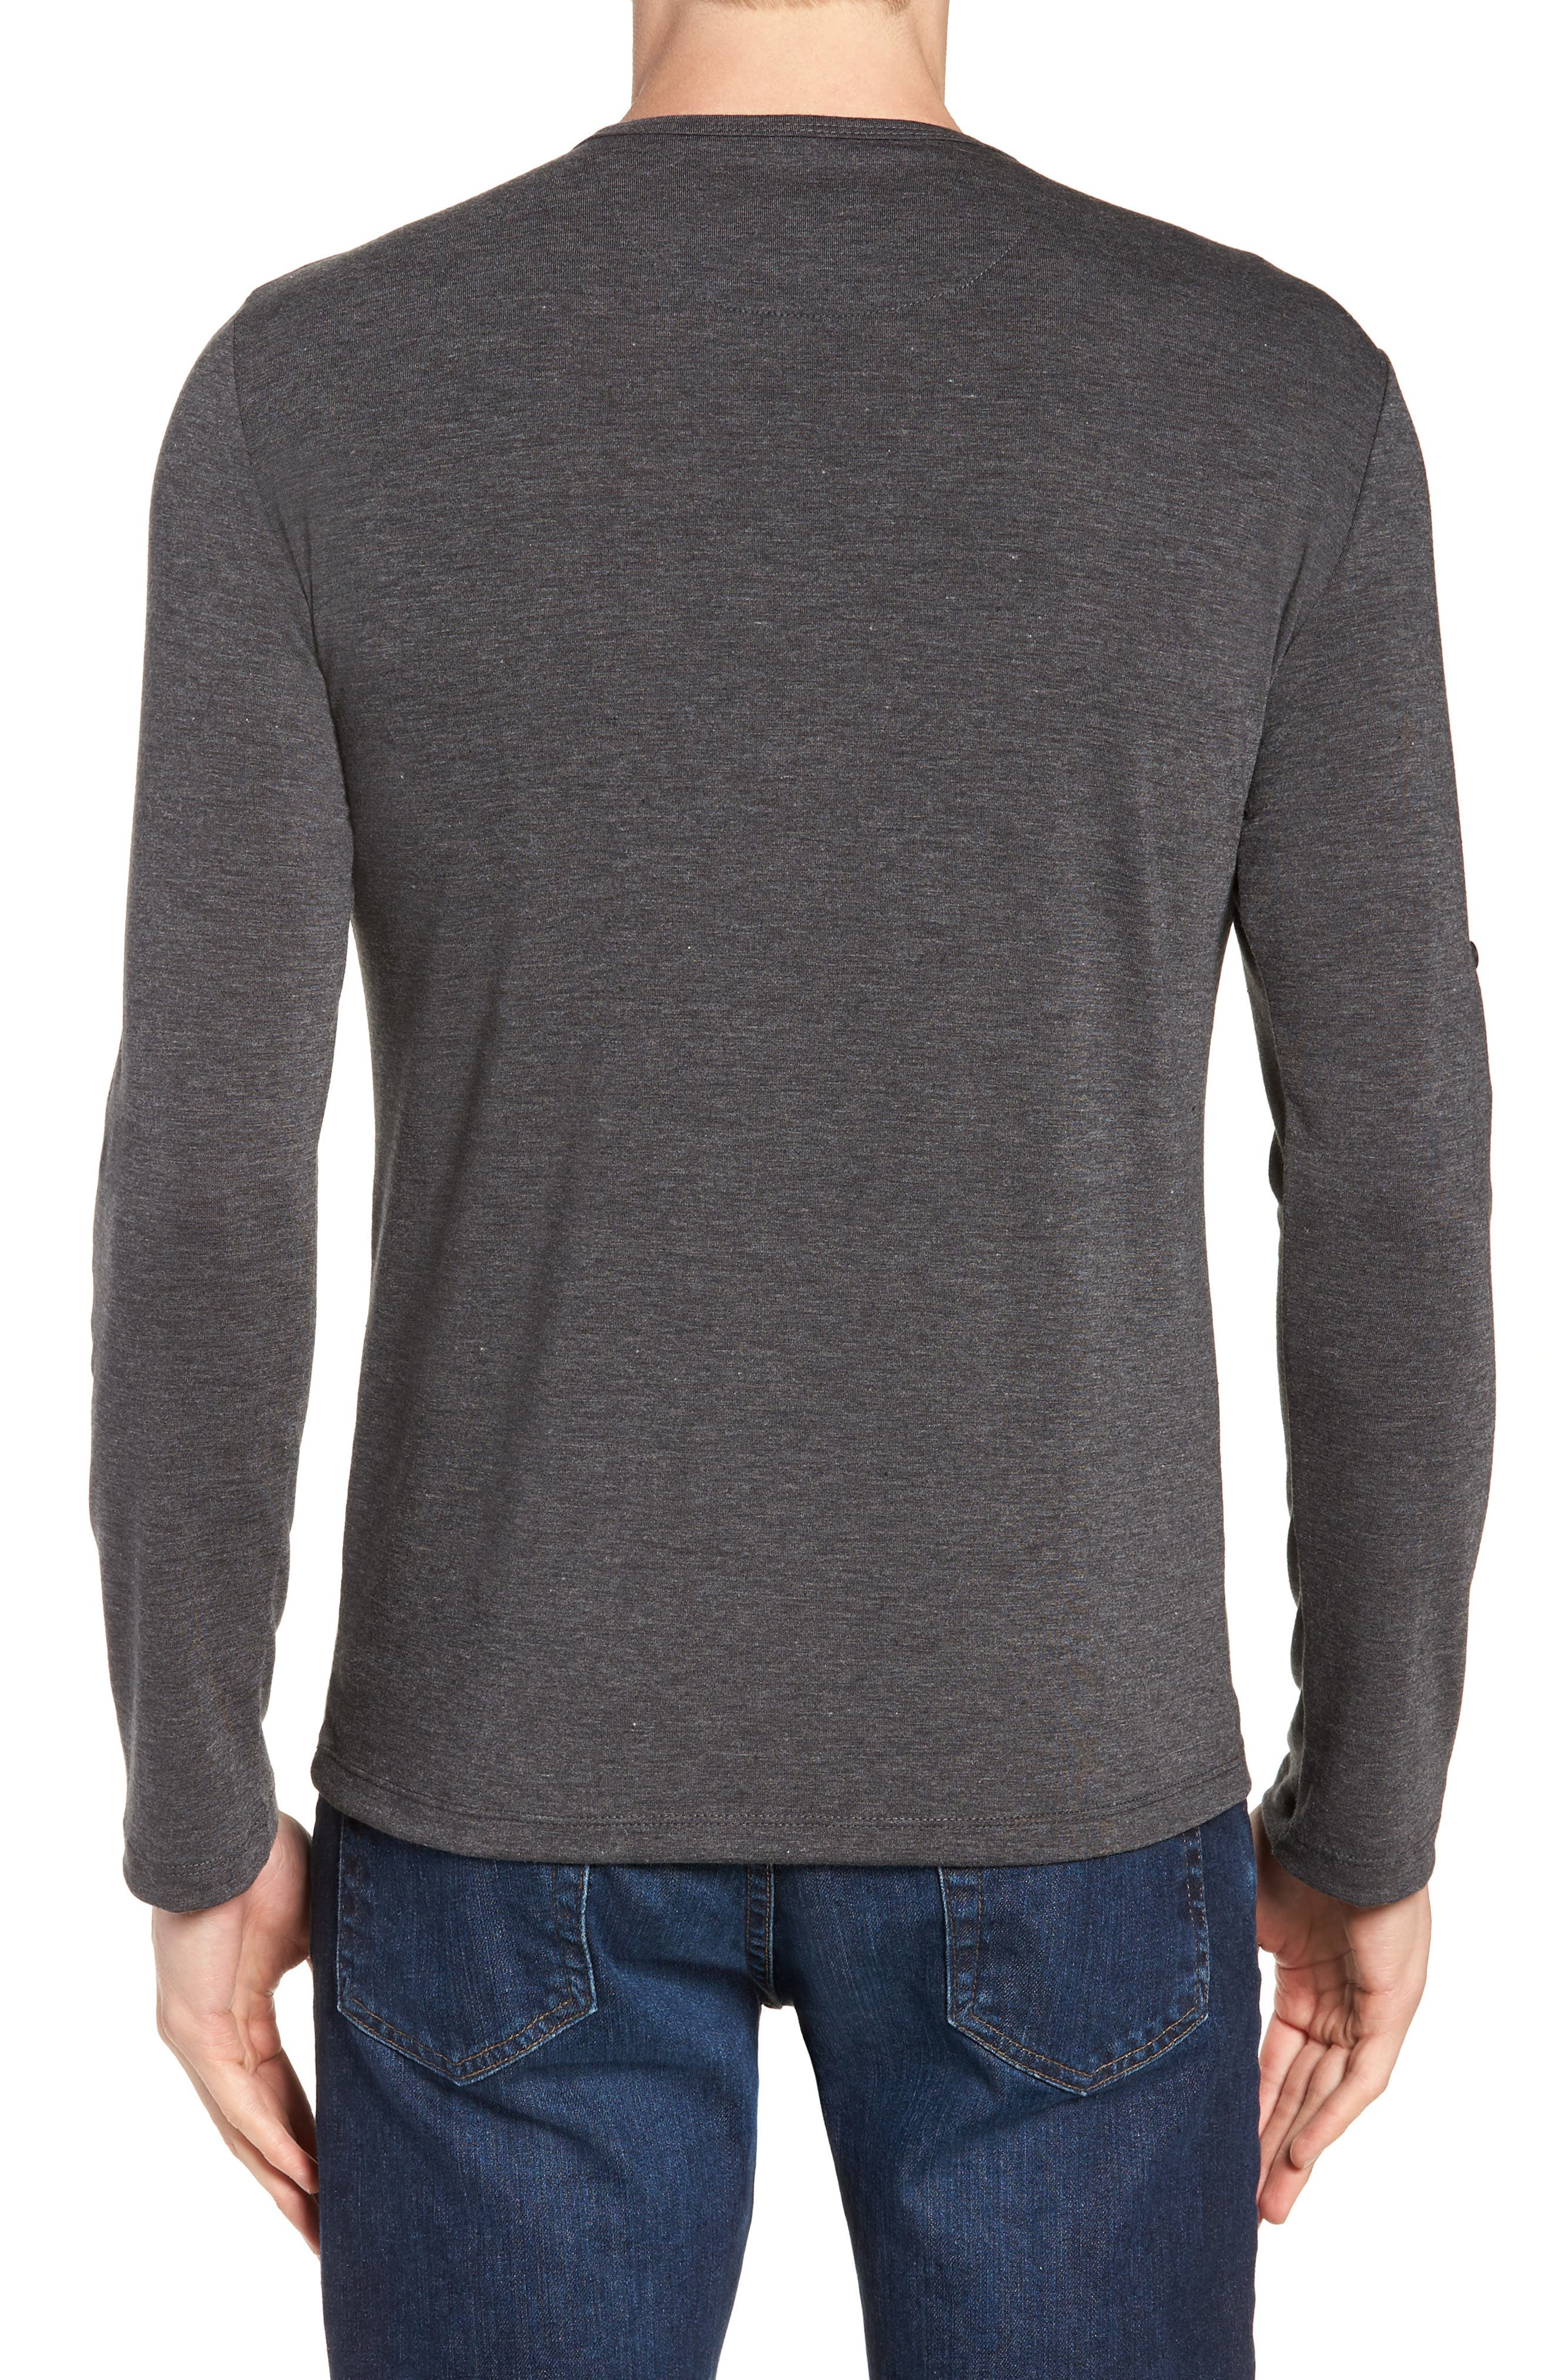 Stoneport Henley,                             Alternate thumbnail 2, color,                             CHARCOAL